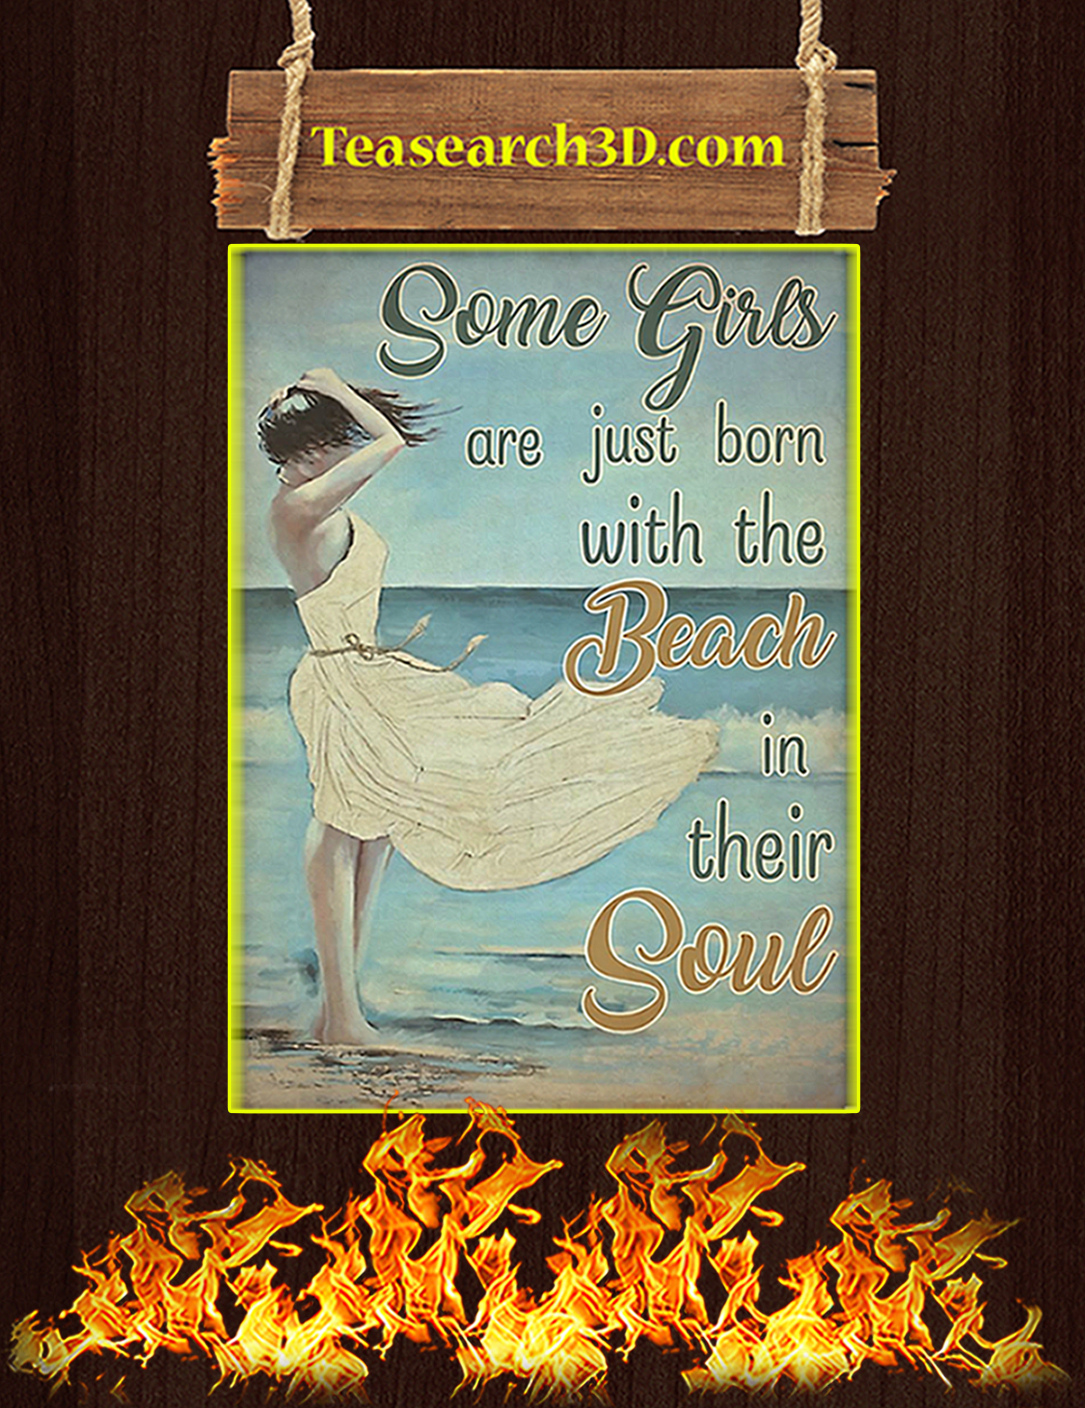 Some girls are just born with the beach in their soul poster A2